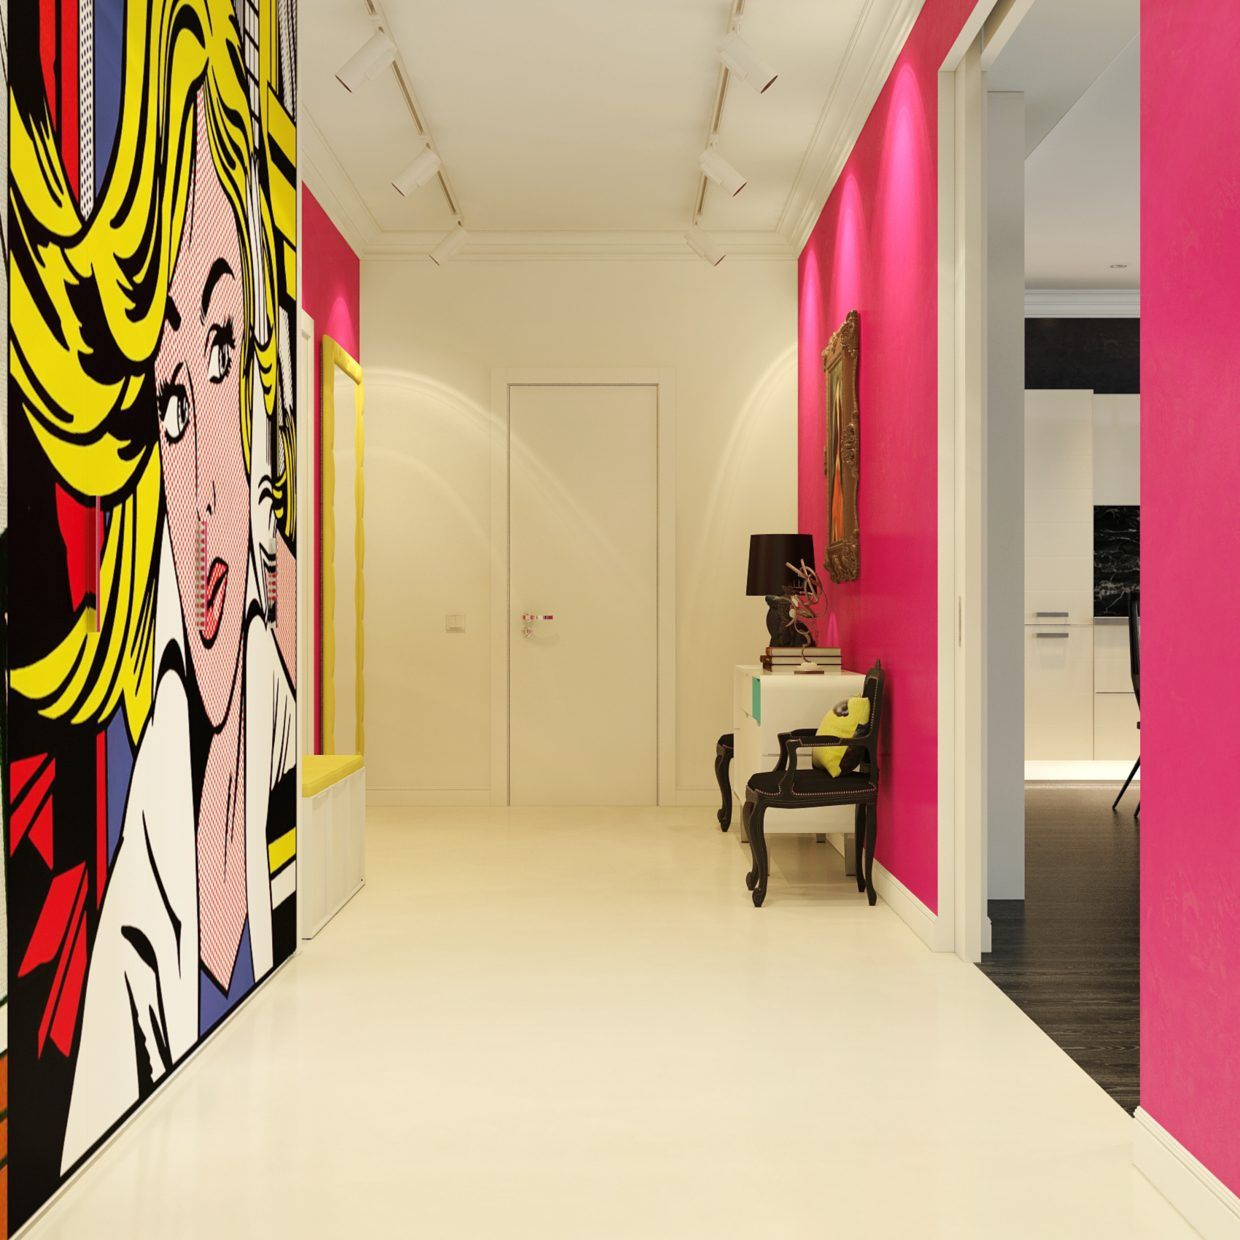 Modern Apartment Design With Pop Artwork Style Decor Looks More ...